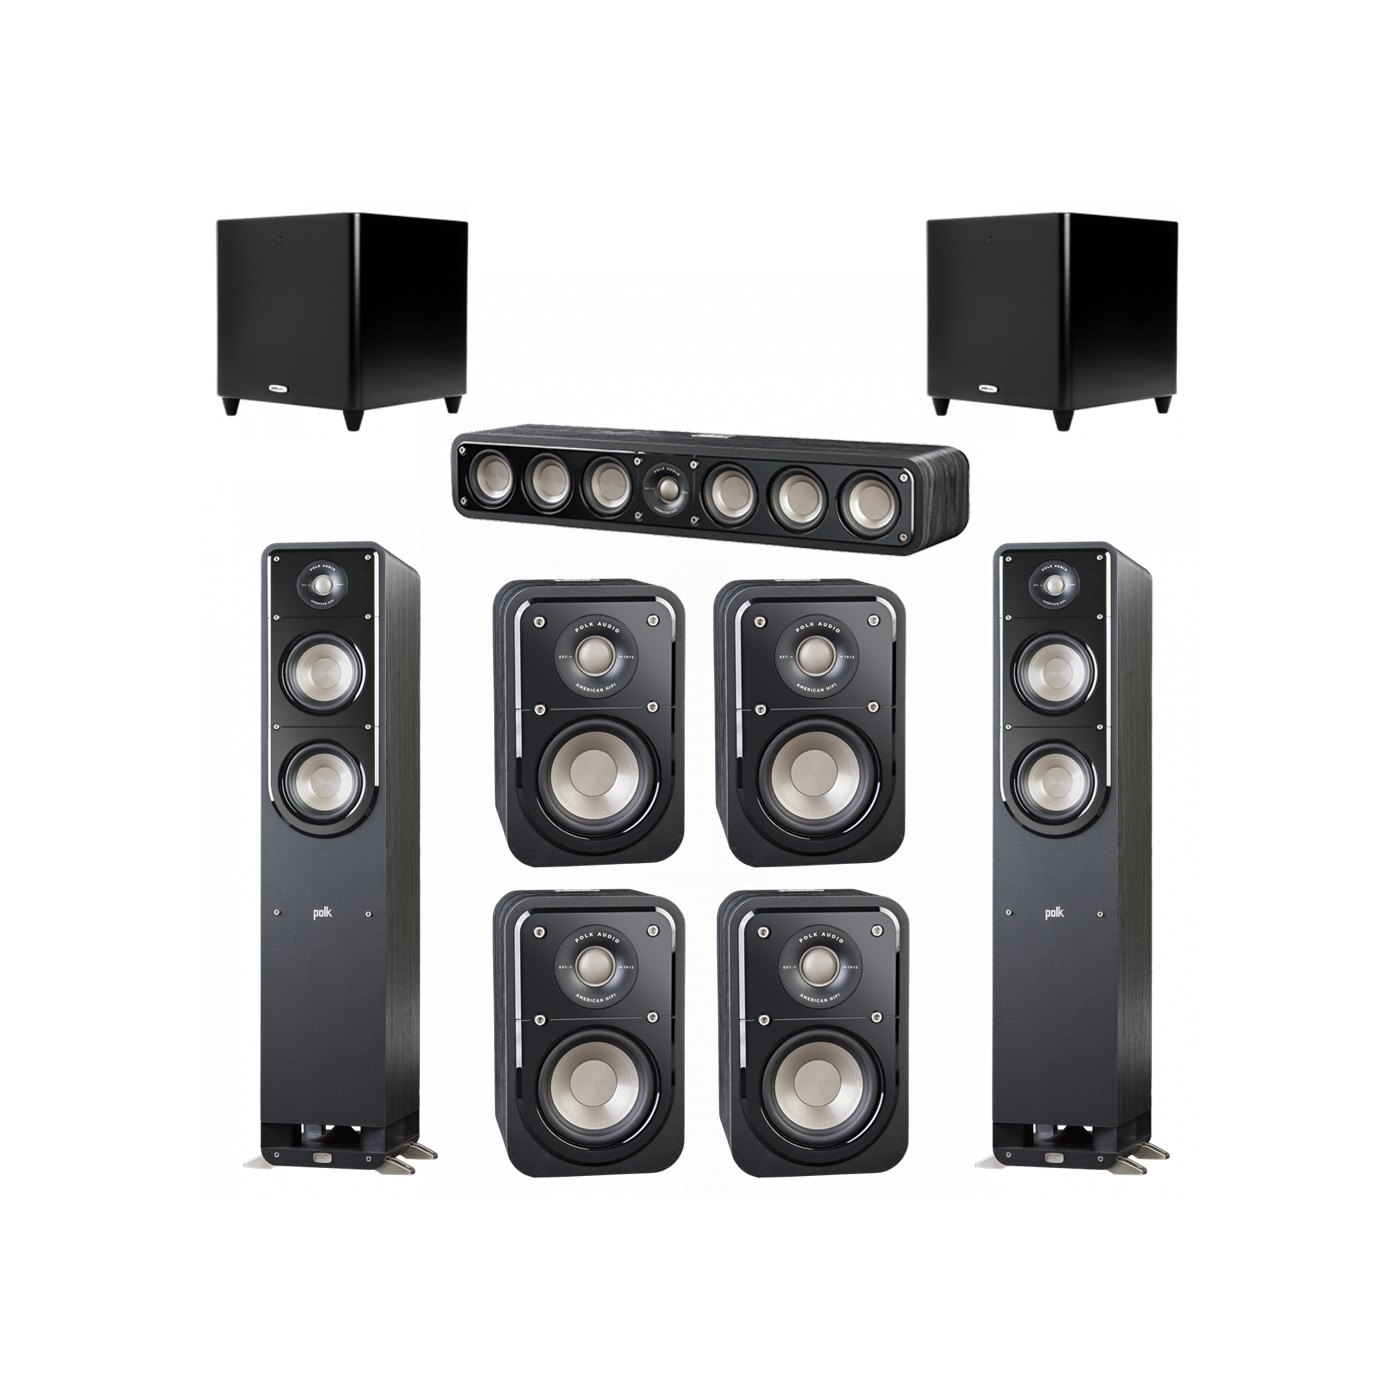 Polk Audio Signature 7.2 System with 2 S50 Tower Speaker, 1 Polk S35 Center Speaker, 4 Polk S10 Bookshelf Speaker, 2 Polk DSW PRO 660 wi Subwoofer